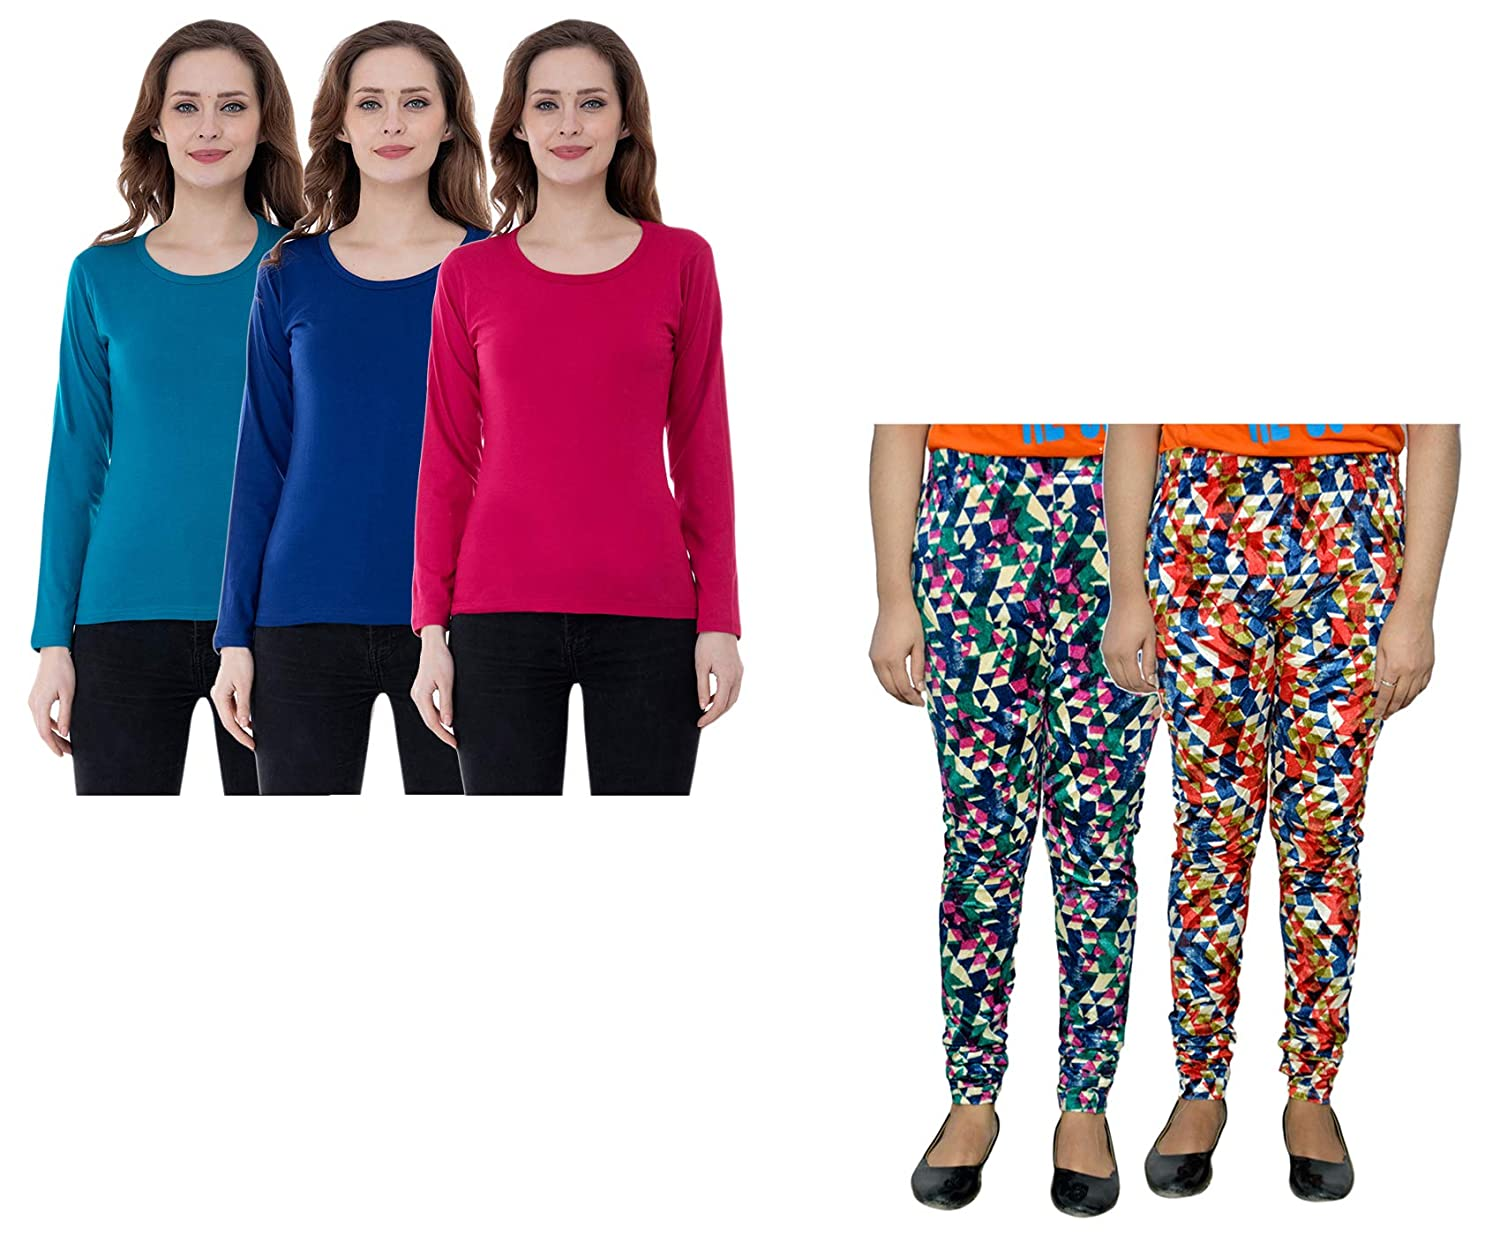 Indistar Cotton Super Soft Solid Multicolor Leggings for Girls Pack of 5